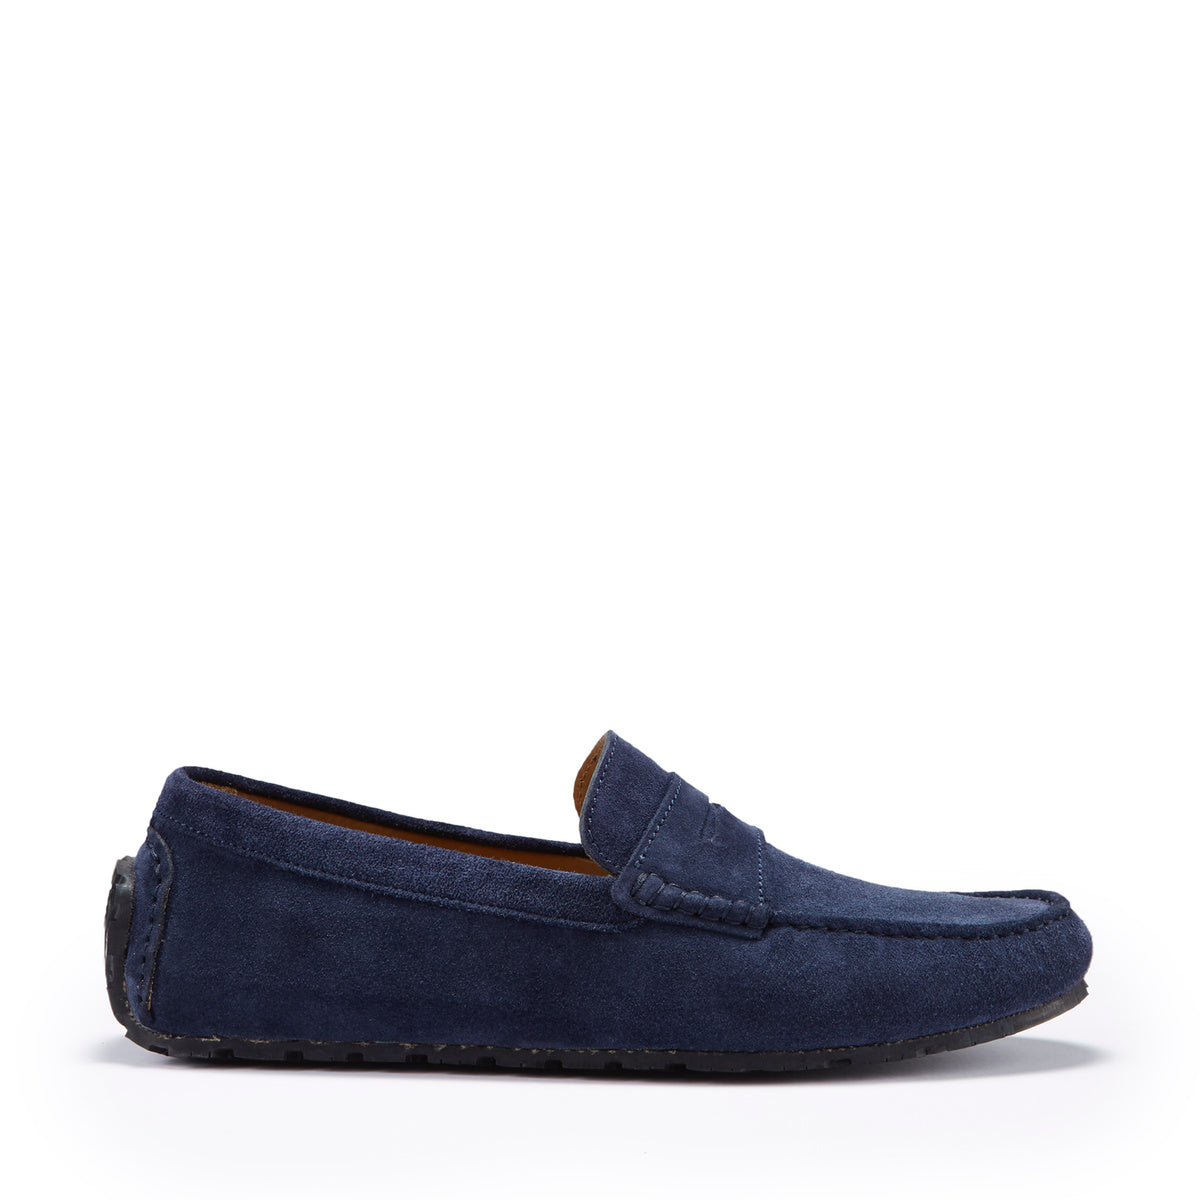 Tyre Sole Penny Driving Loafers, navy blue suede